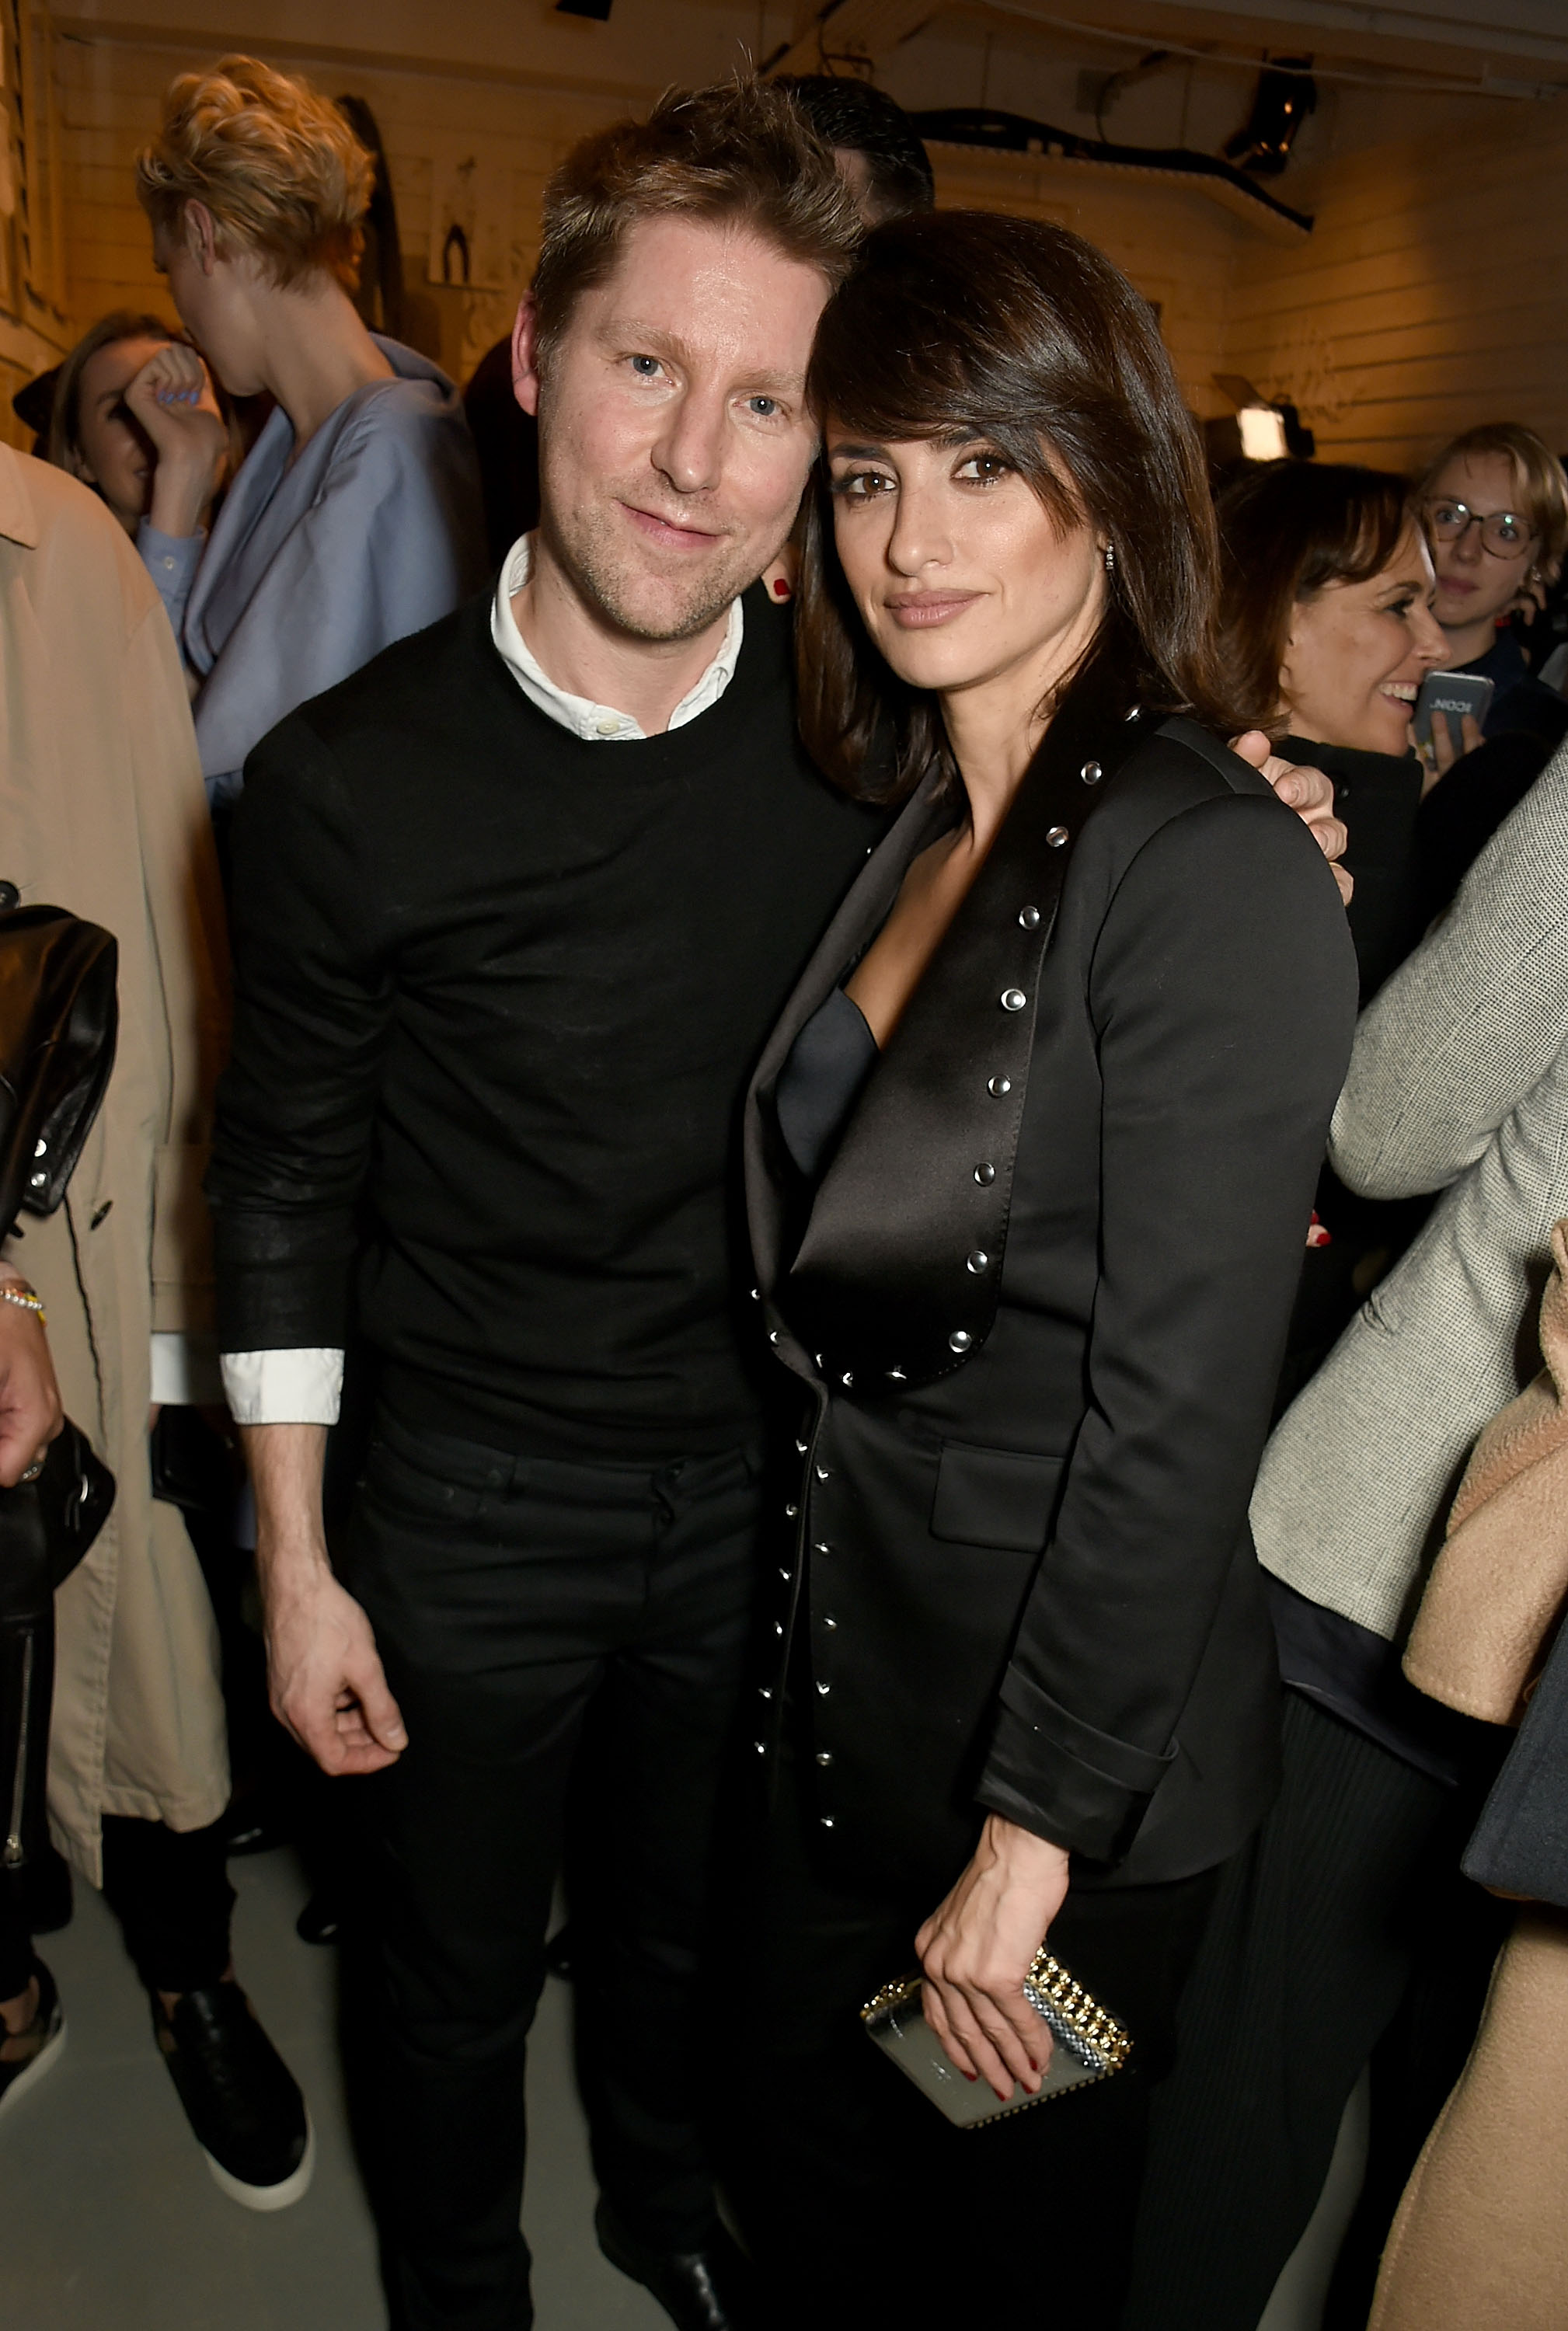 LONDON, ENGLAND - FEBRUARY 20:  Penelope Cruzl and Burberry CEO Christopher Bailey attend the Burberry February 2017 Show during London Fashion Week February 2017 at Makers House on February 20, 2017 in London, England.  (Photo by David M. Benett/Dave Benett/Getty Images for Burberry) *** Local Caption *** Penelope Cruz; Christopher Bailey